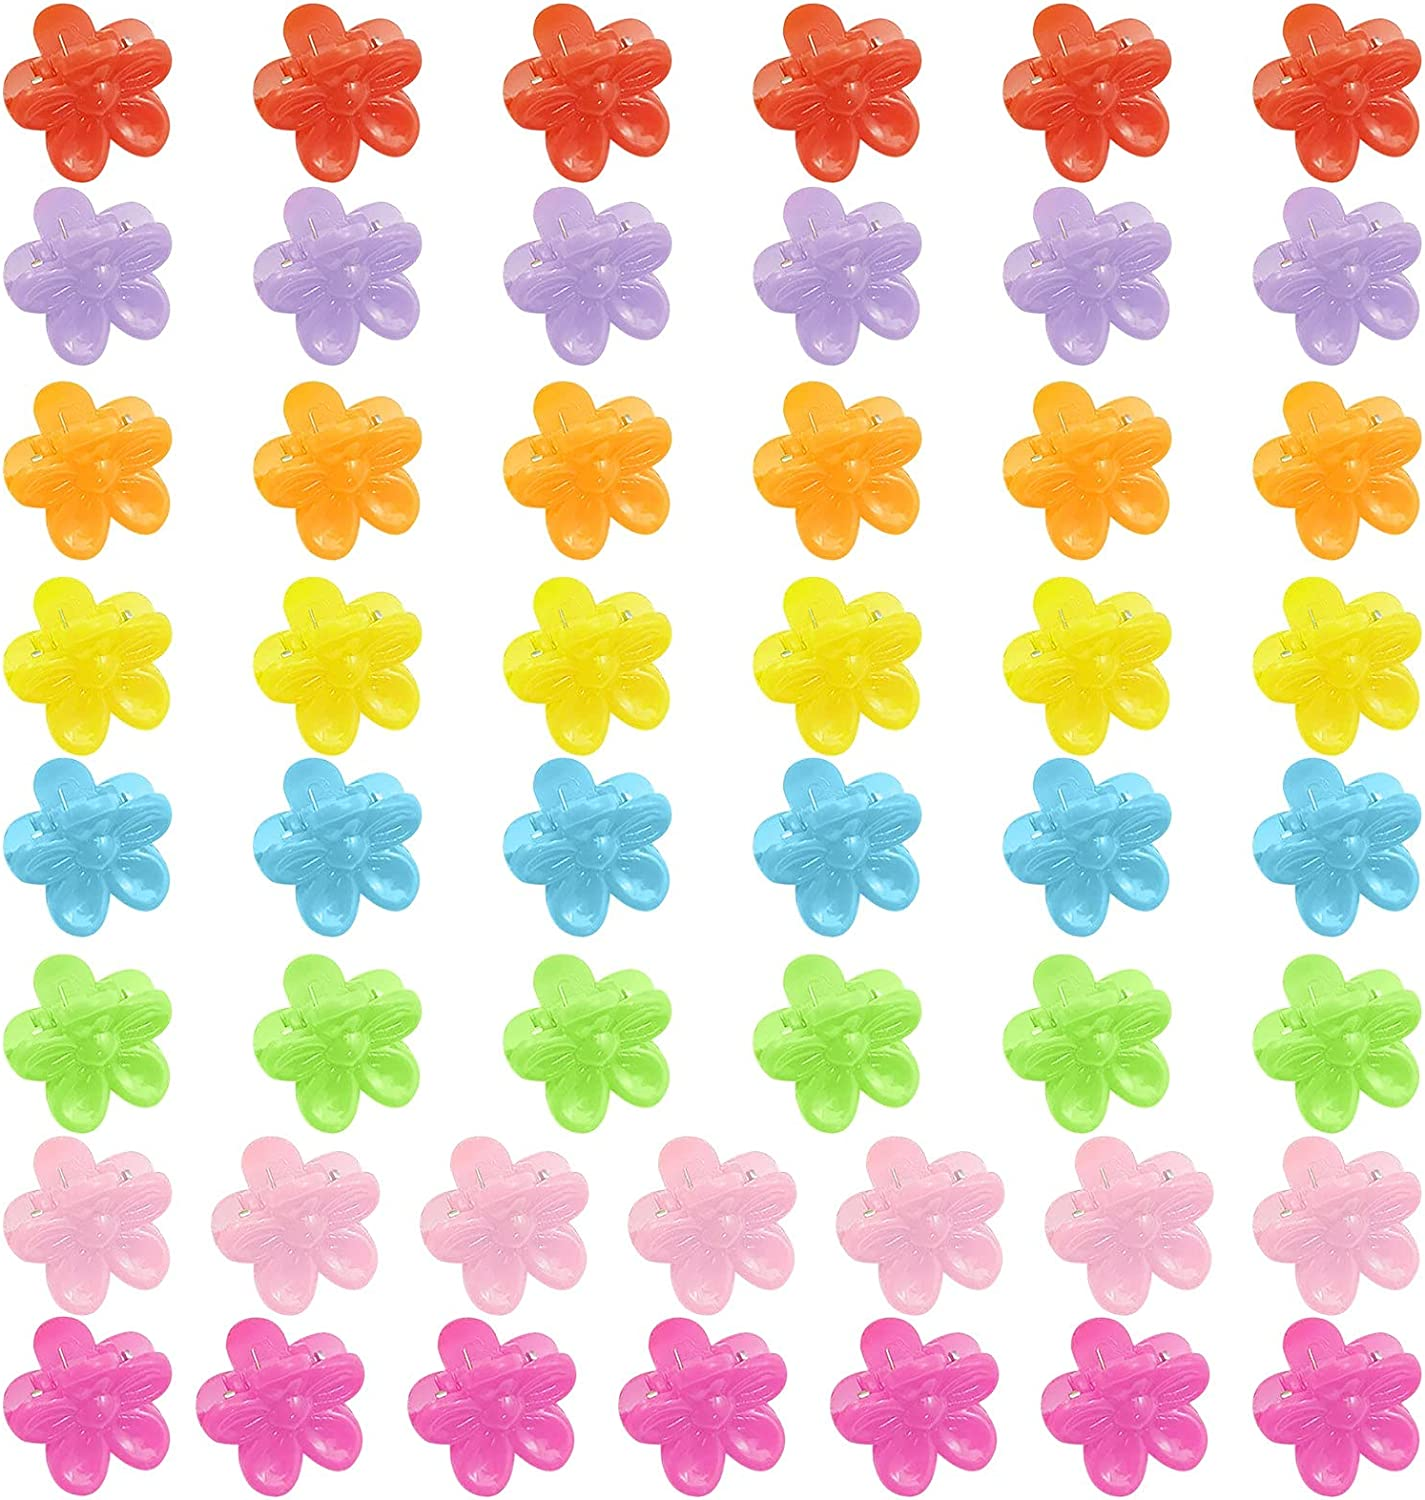 OGBK Samury Sale price Assorted Color Hair Clips Butterfly C Popular brand